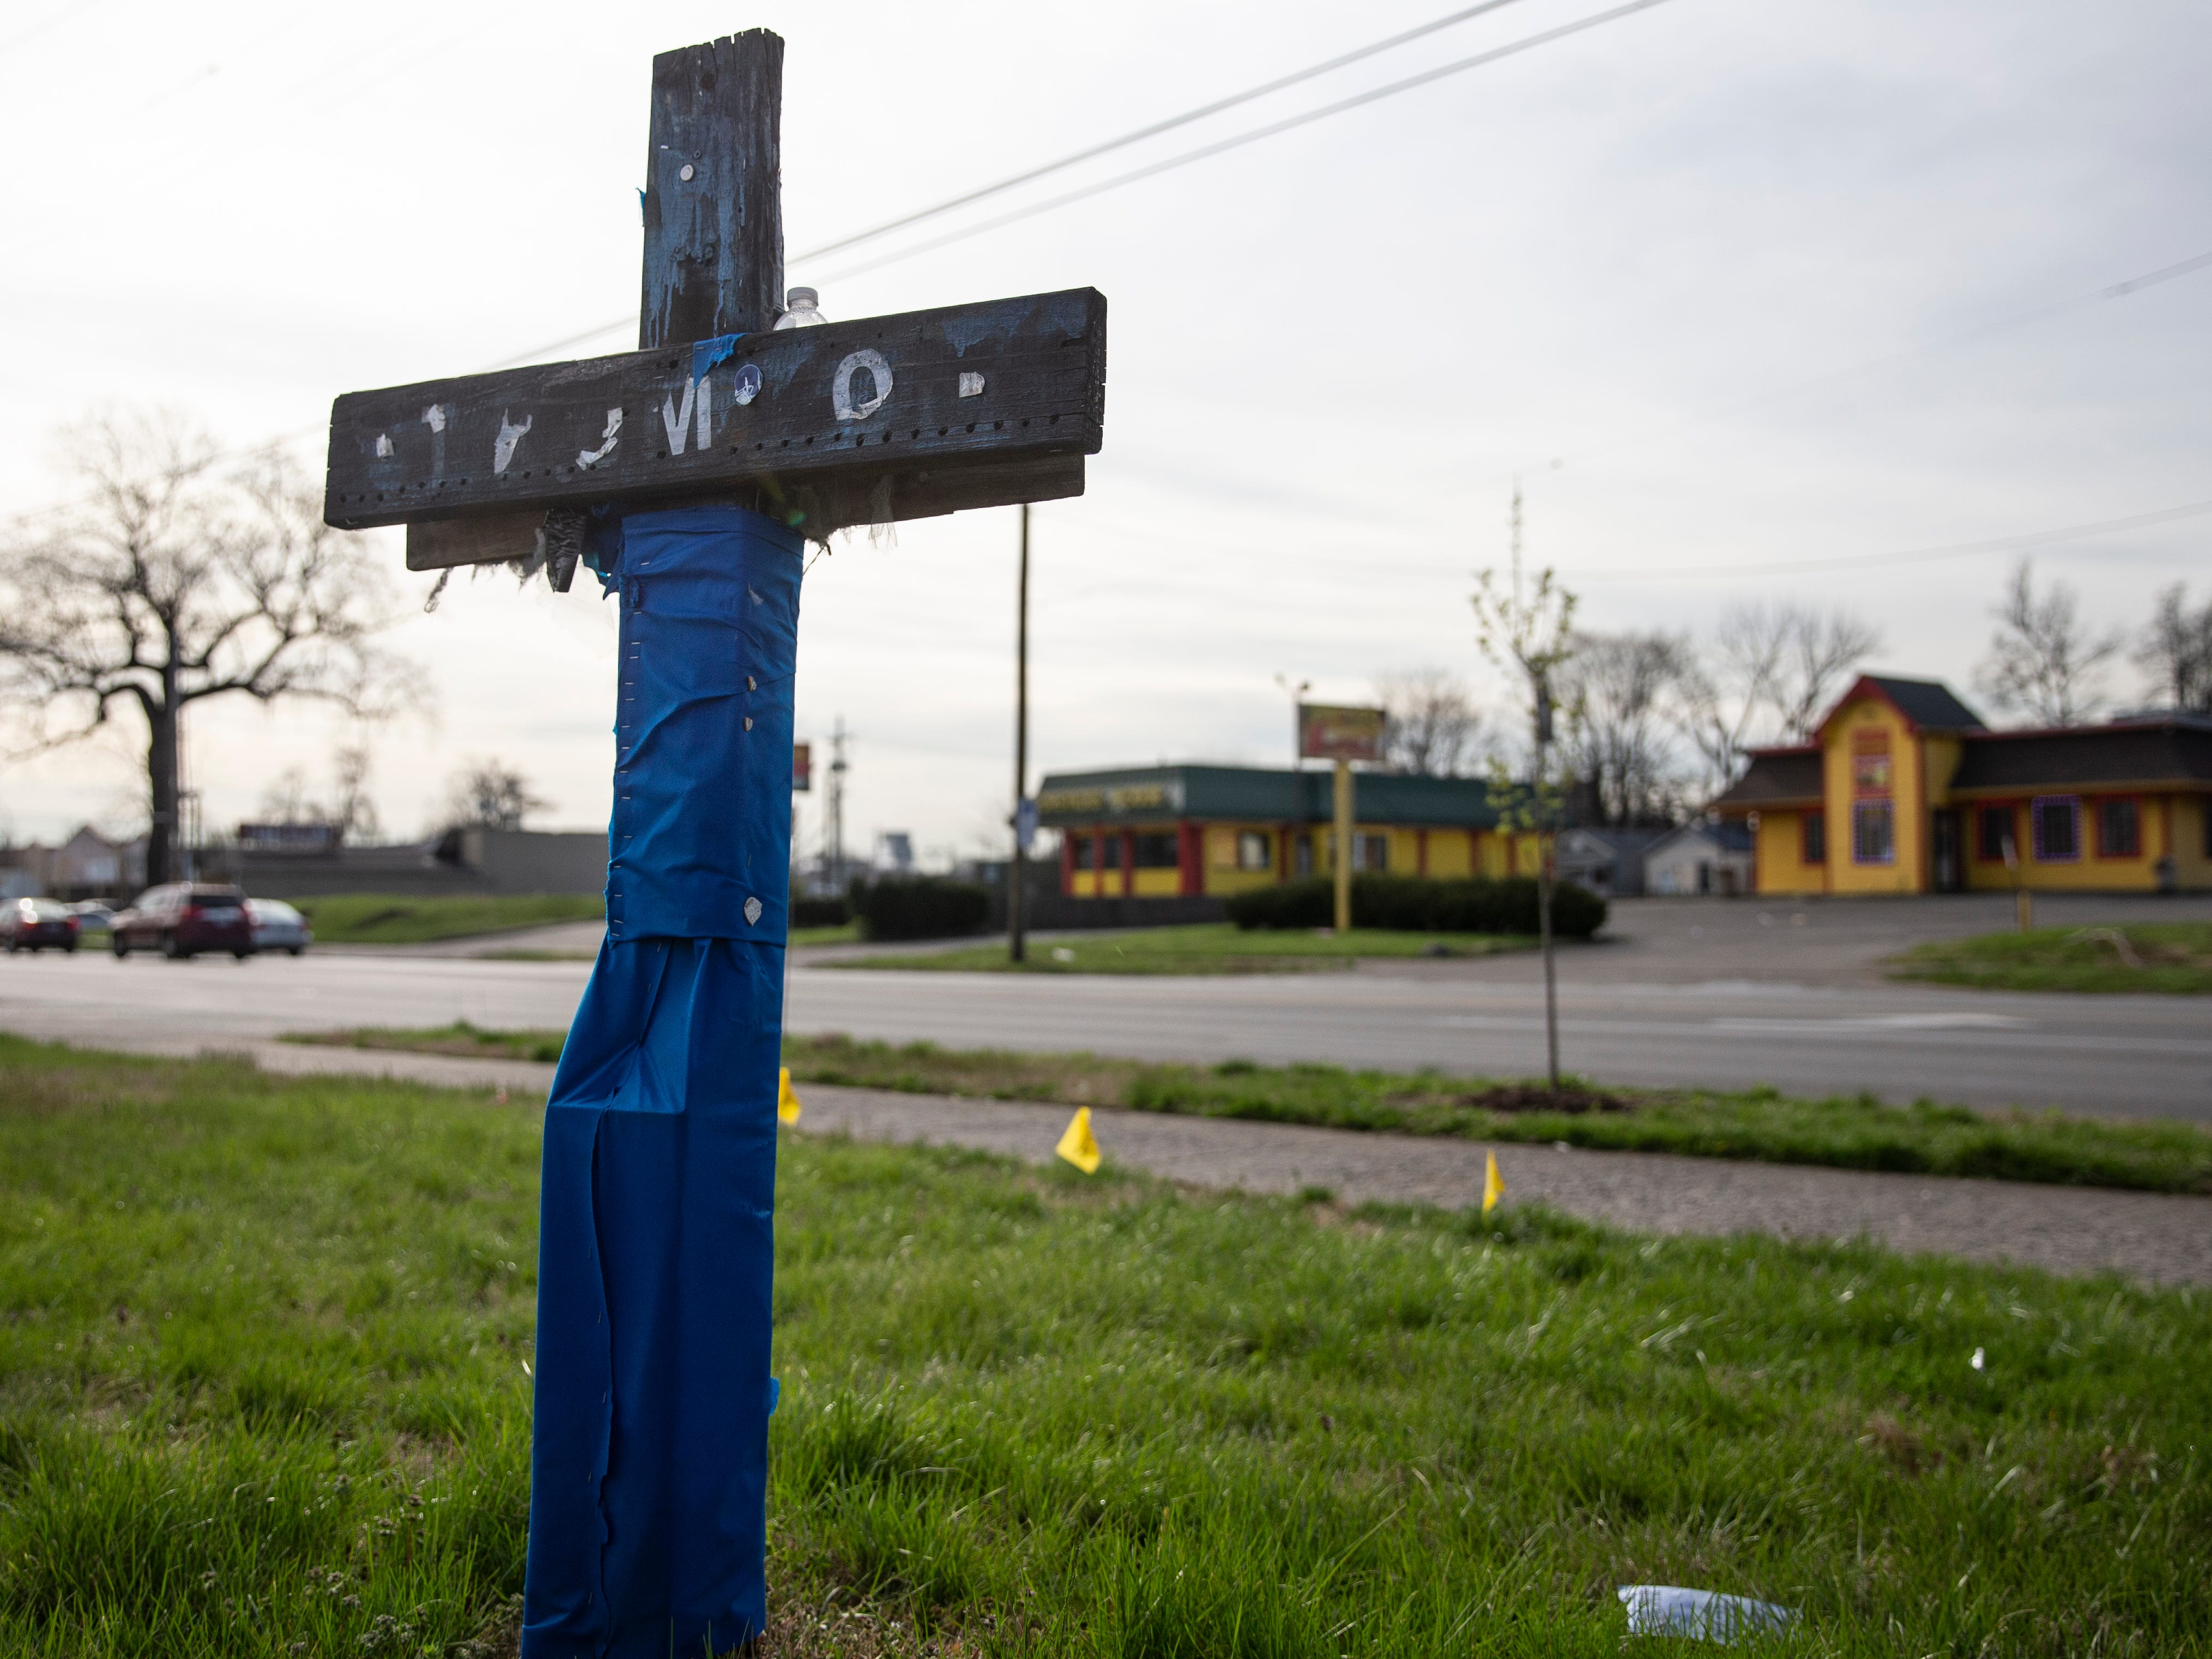 A decaying memorial cross is thought to be dedicated to a Brandon Trumbo, 16, who was shot and killed by another juvenile in a parking lot at Broadway at 22nd Street, in February 2008. April 2, 2019.